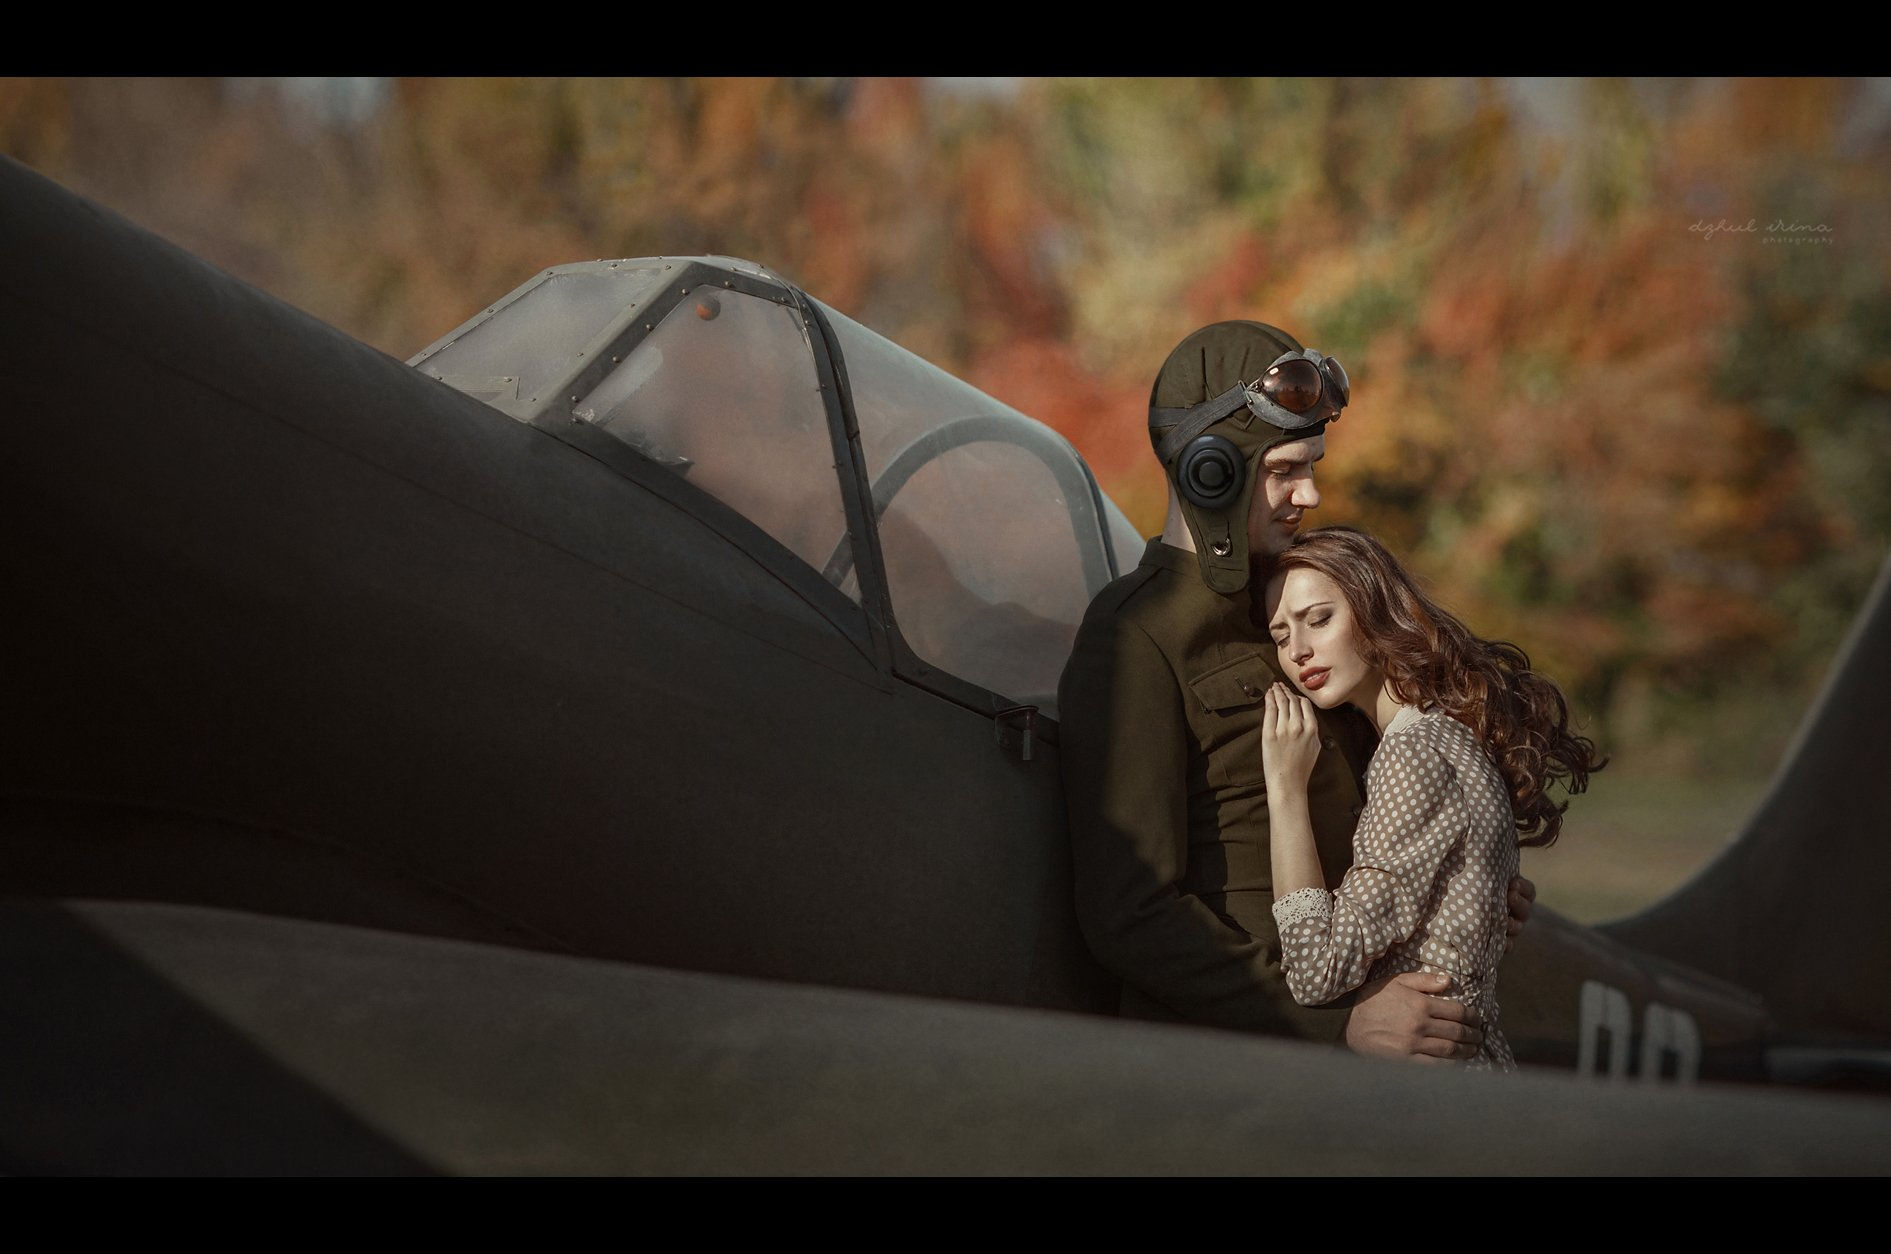 Aircraft, Amazing, Beautiful, Canon, Canon 5D Mark III, Dzhul irina, Girl, Irinadzhul, Love, Man, People, Photo, Photography, Photoshop, Pilot, Popular, Portrait, Woman, Ирина Джуль